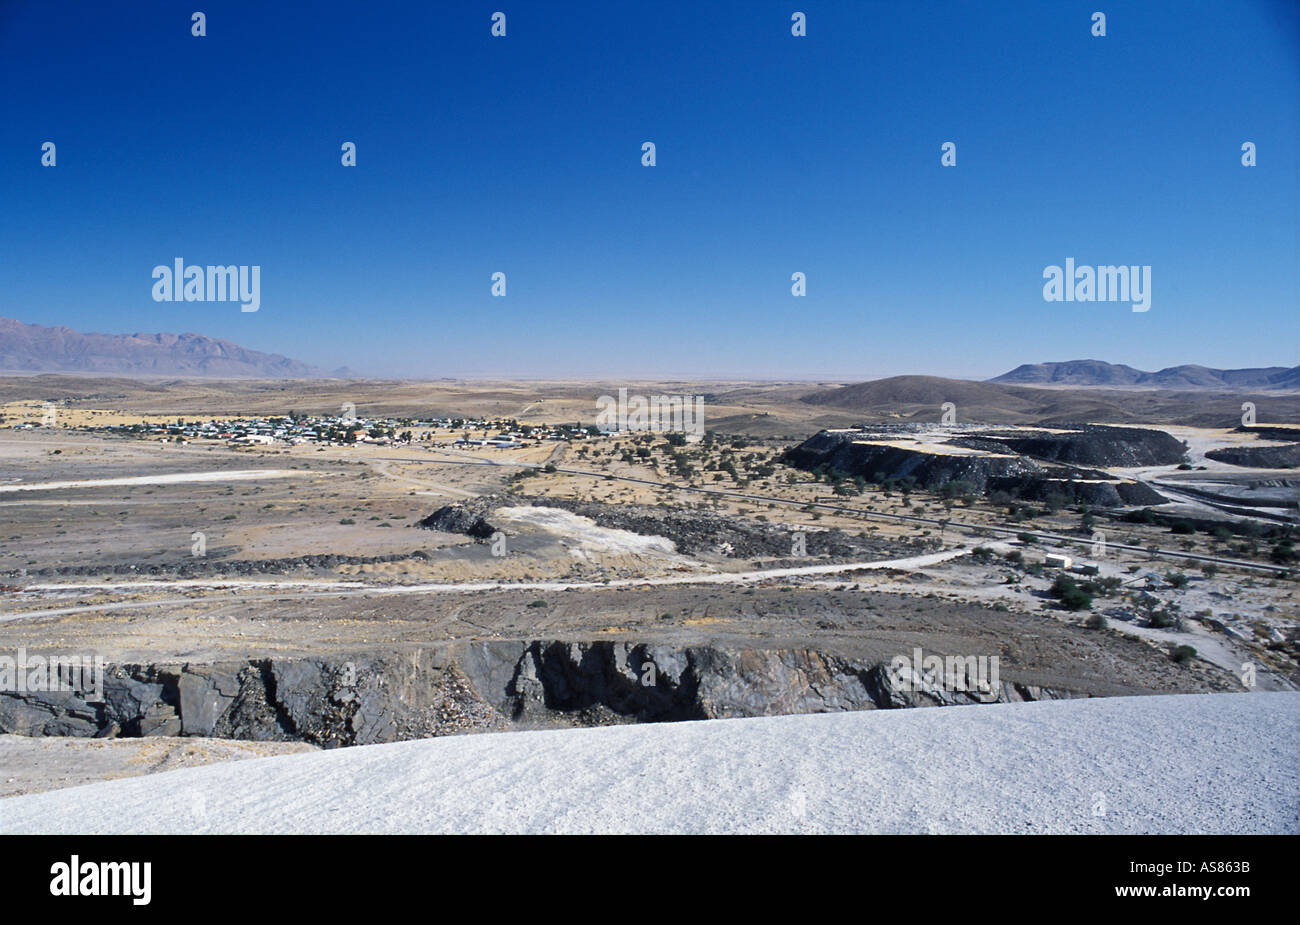 The ex mining town of Uis viewed from the top of the waste heap Namibia - Stock Image